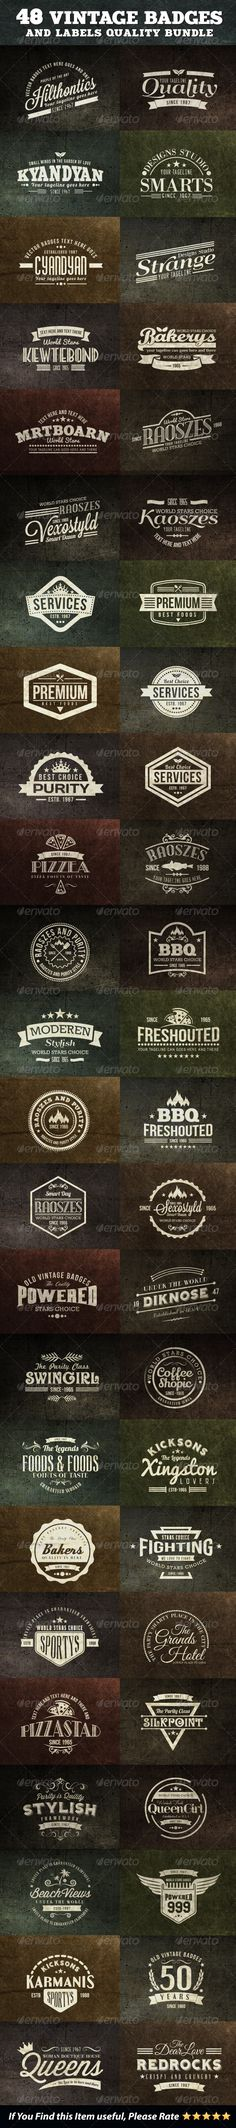 48 Vintage Badges and Labels Bundle Template | Buy and Download: http://graphicriver.net/item/48-vintage-badges-and-labels-bundle/7094167?WT.ac=category_thumb&WT.z_author=emotions76&ref=ksioks